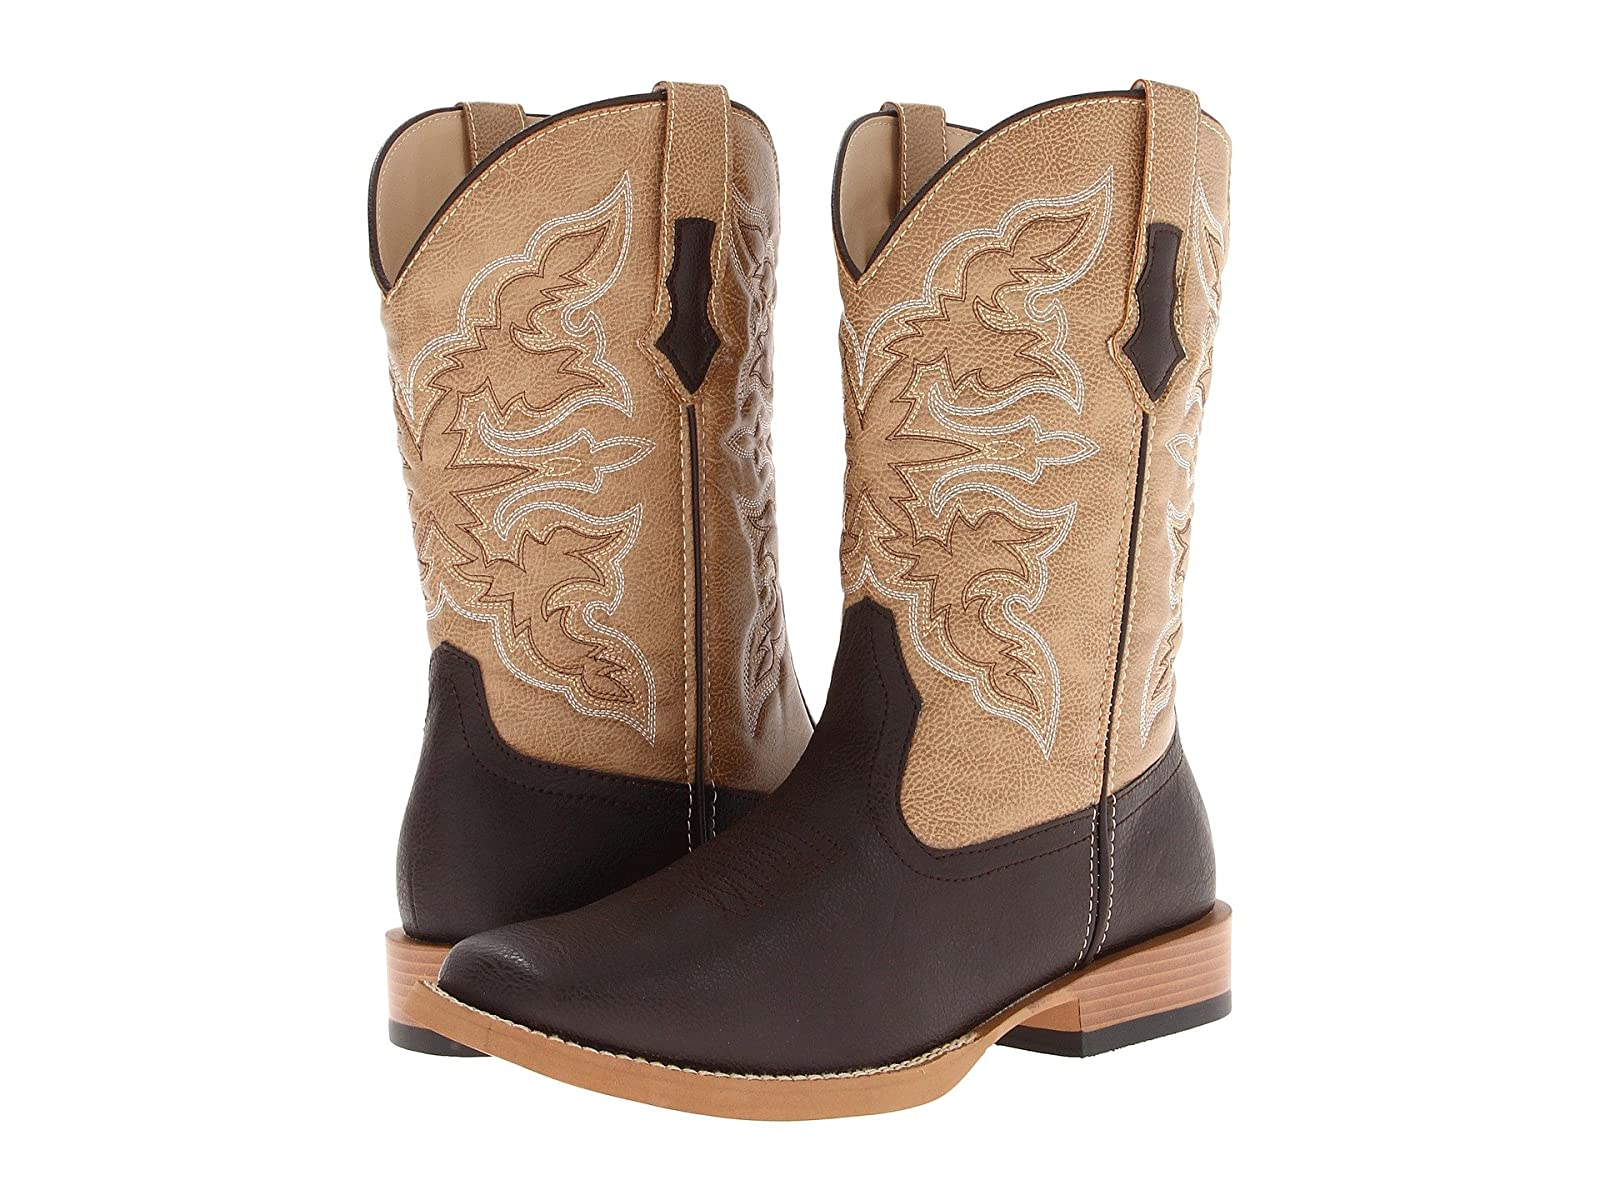 Roper Square Toe Cowboy BootEconomical and quality shoes